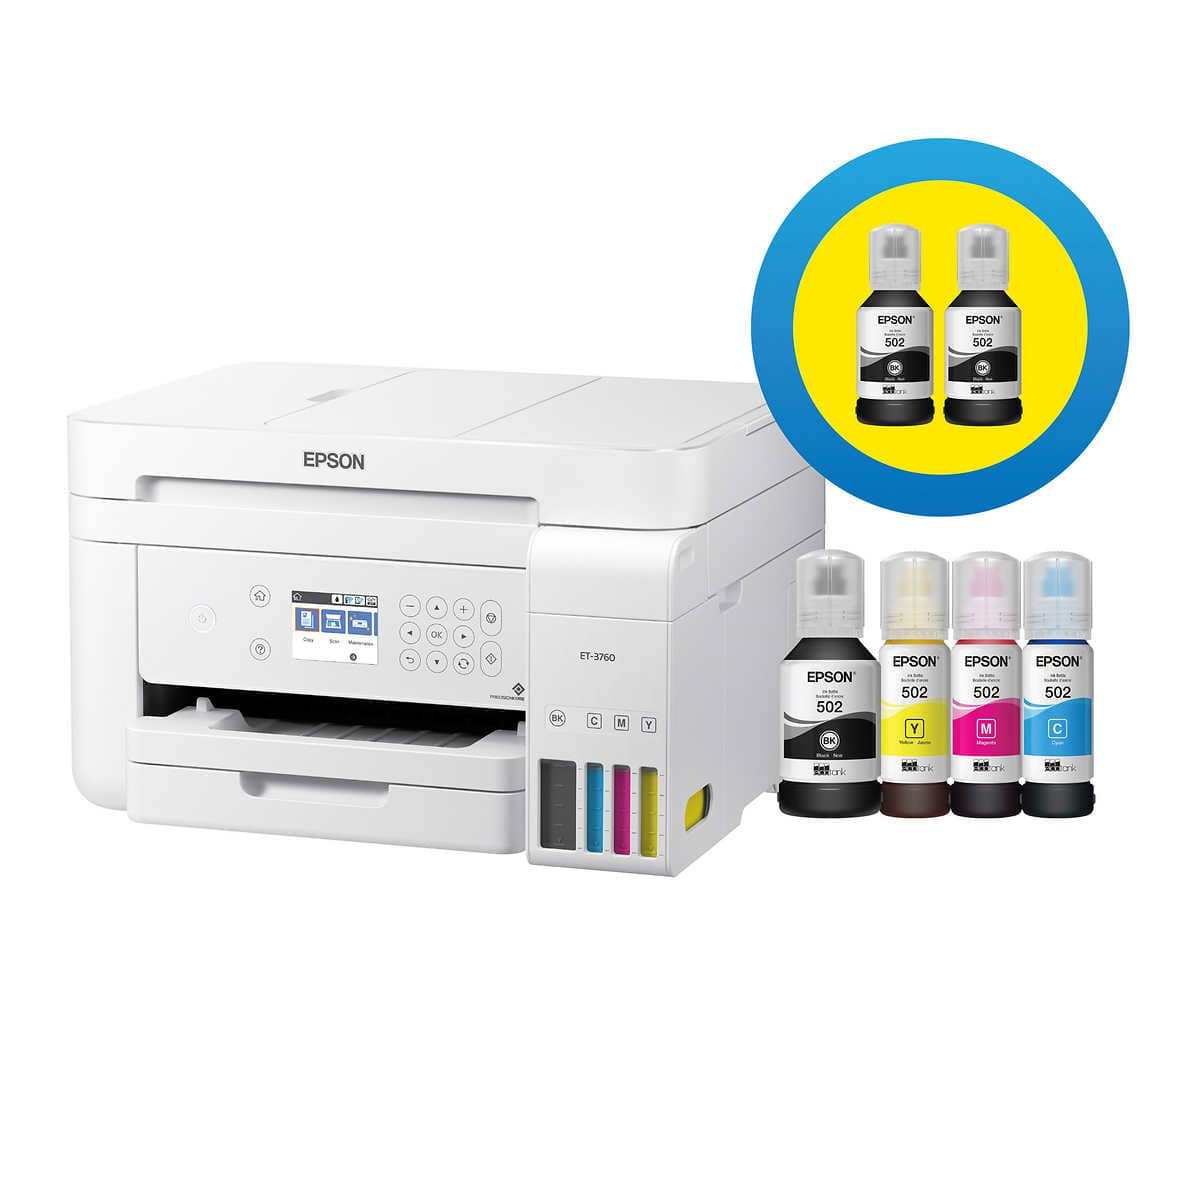 Epson EcoTank ET-3760 Special Edition All-in-One Wireless Printer with Two Bonus Black Ink Bottles 5/19-6/13 $279.99